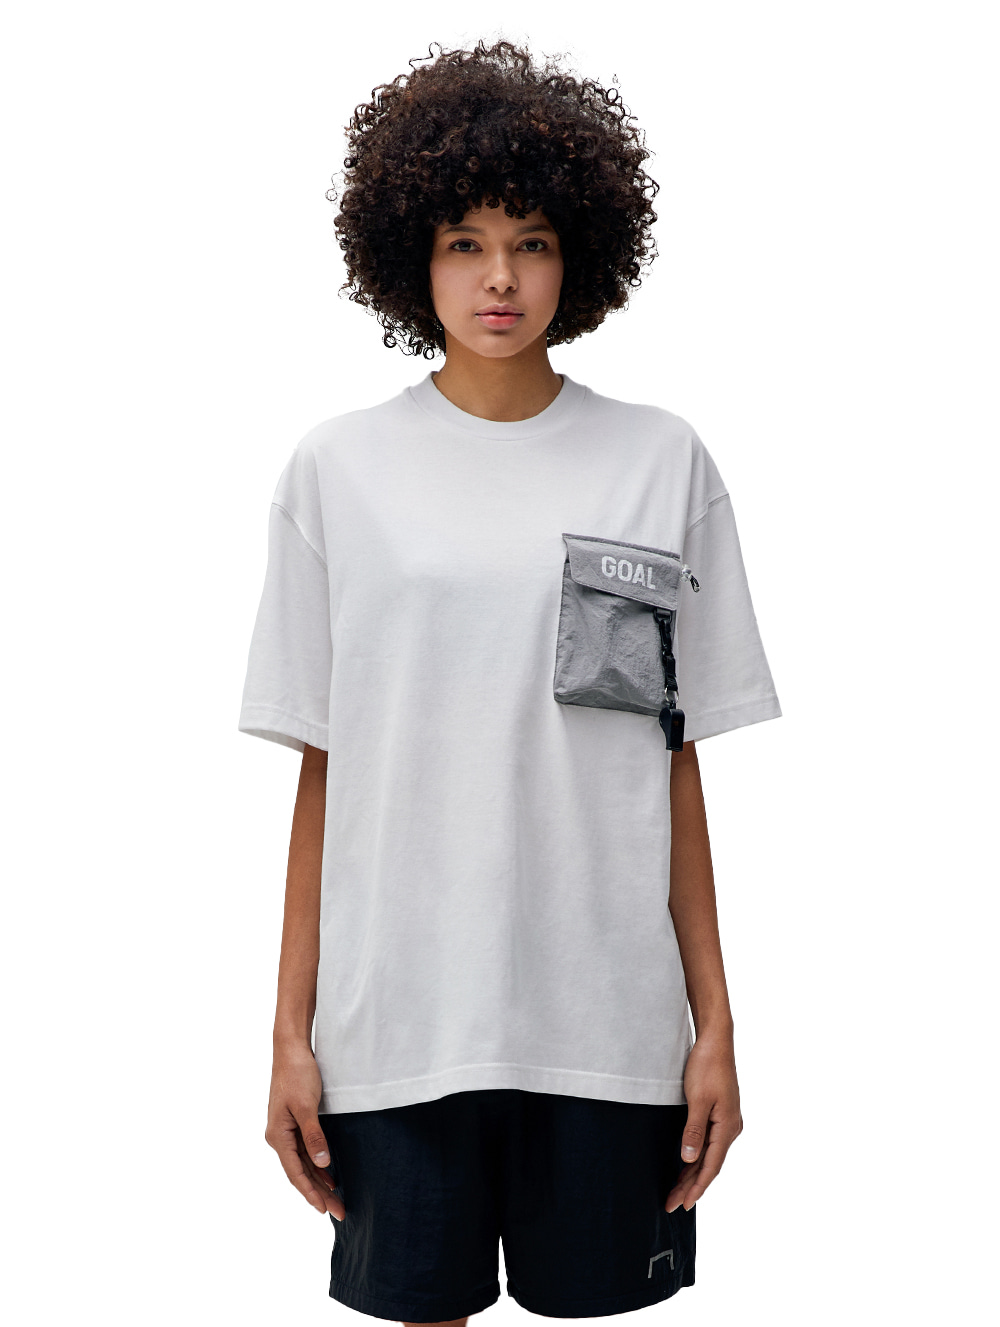 NYLON METAL POCKET SHORT SLEEVE TEE - WHITE